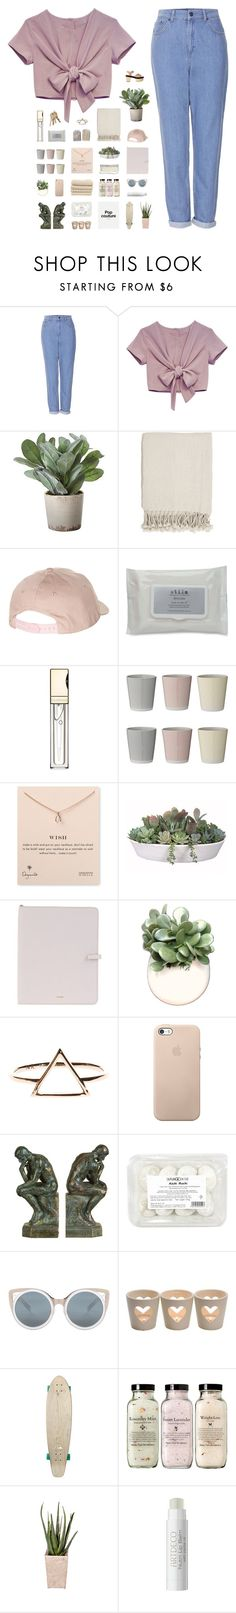 """find a brand new ending"" by iced-lemons ❤ liked on Polyvore featuring Topshop, Torre & Tagus, Surya, Billabong, Stila, Clarins, Bloomingville, Dogeared, VesseL and Jil Sander"